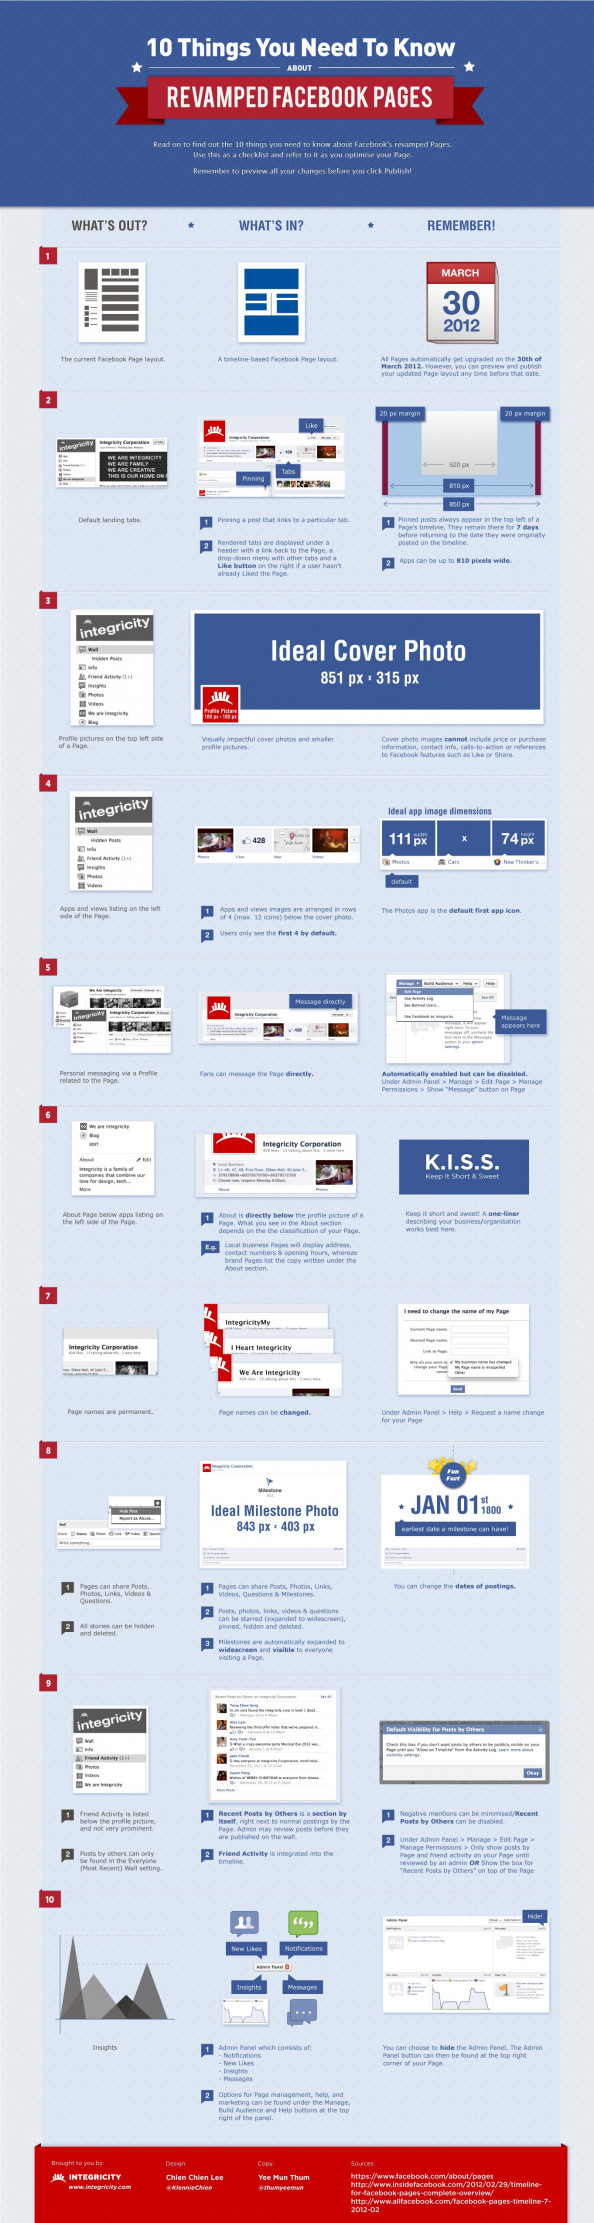 10 Things You Need to Know About Revamped Facebook Pages Infographic